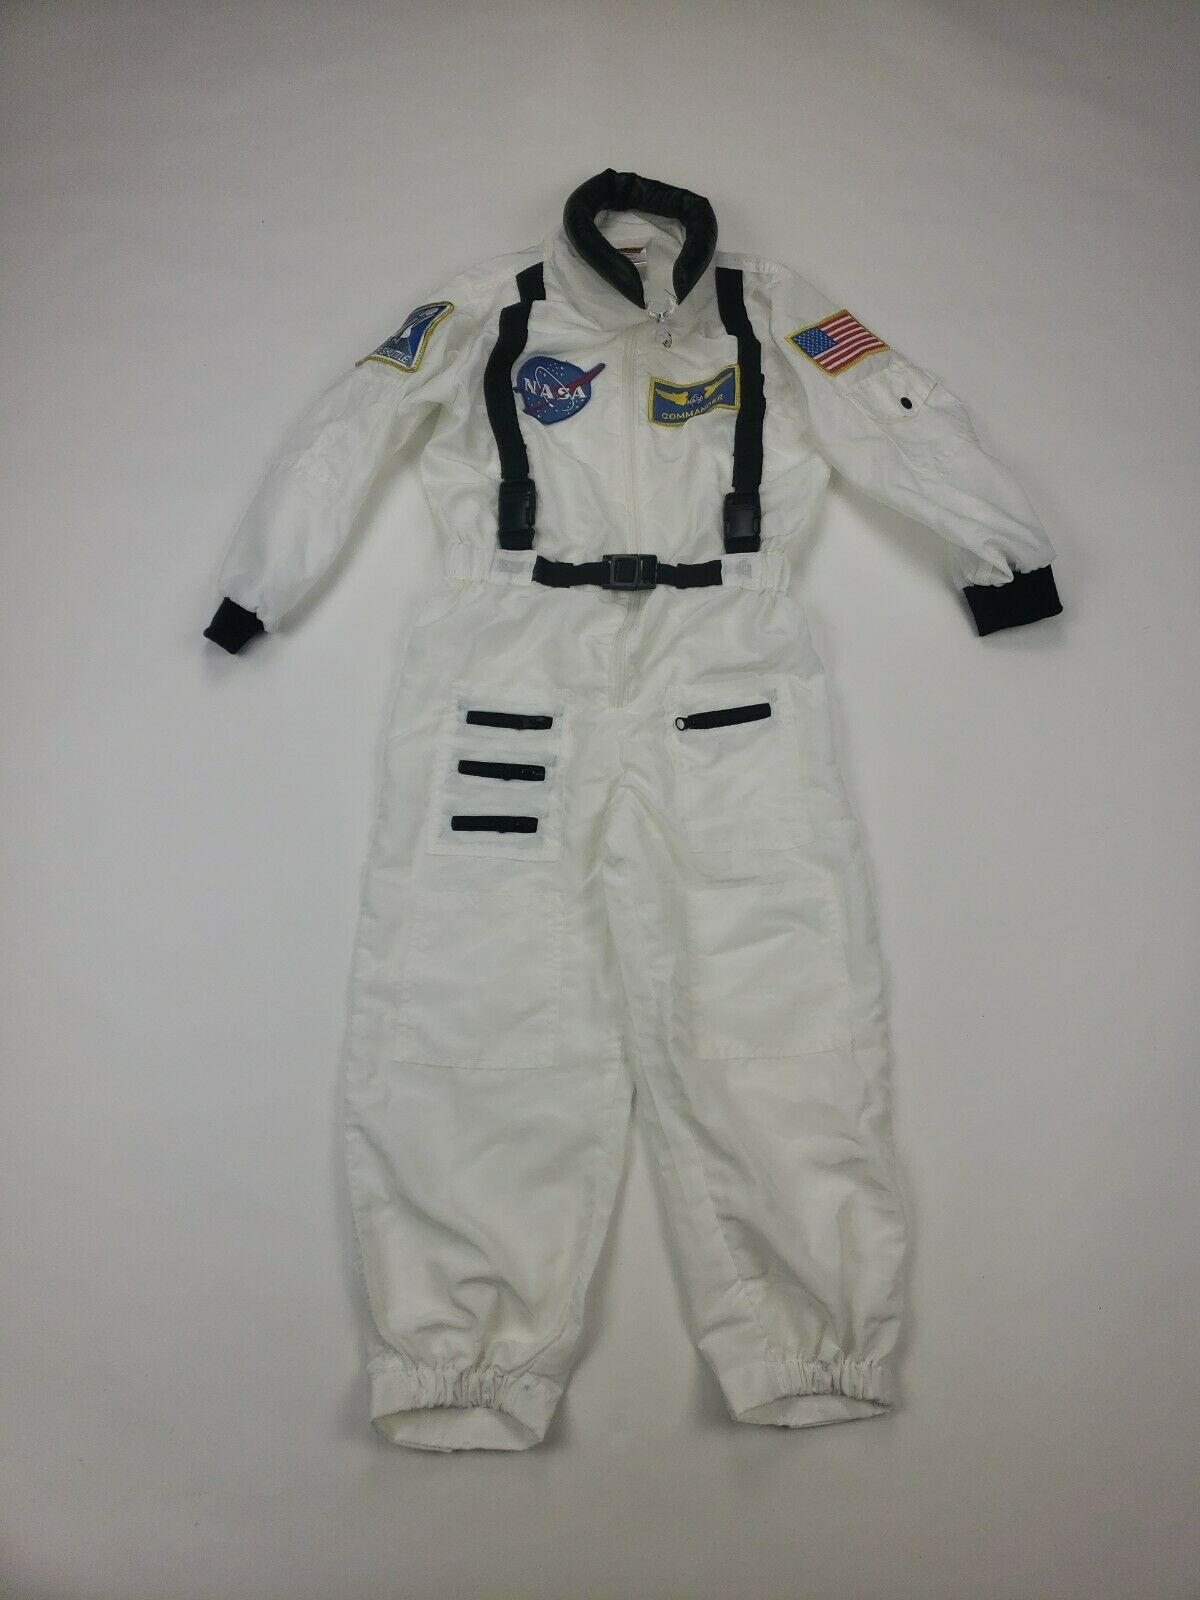 Get Real Gear NASA Explorer Astronaut Space Suit Costume Dress Up For Kids 6 - 8